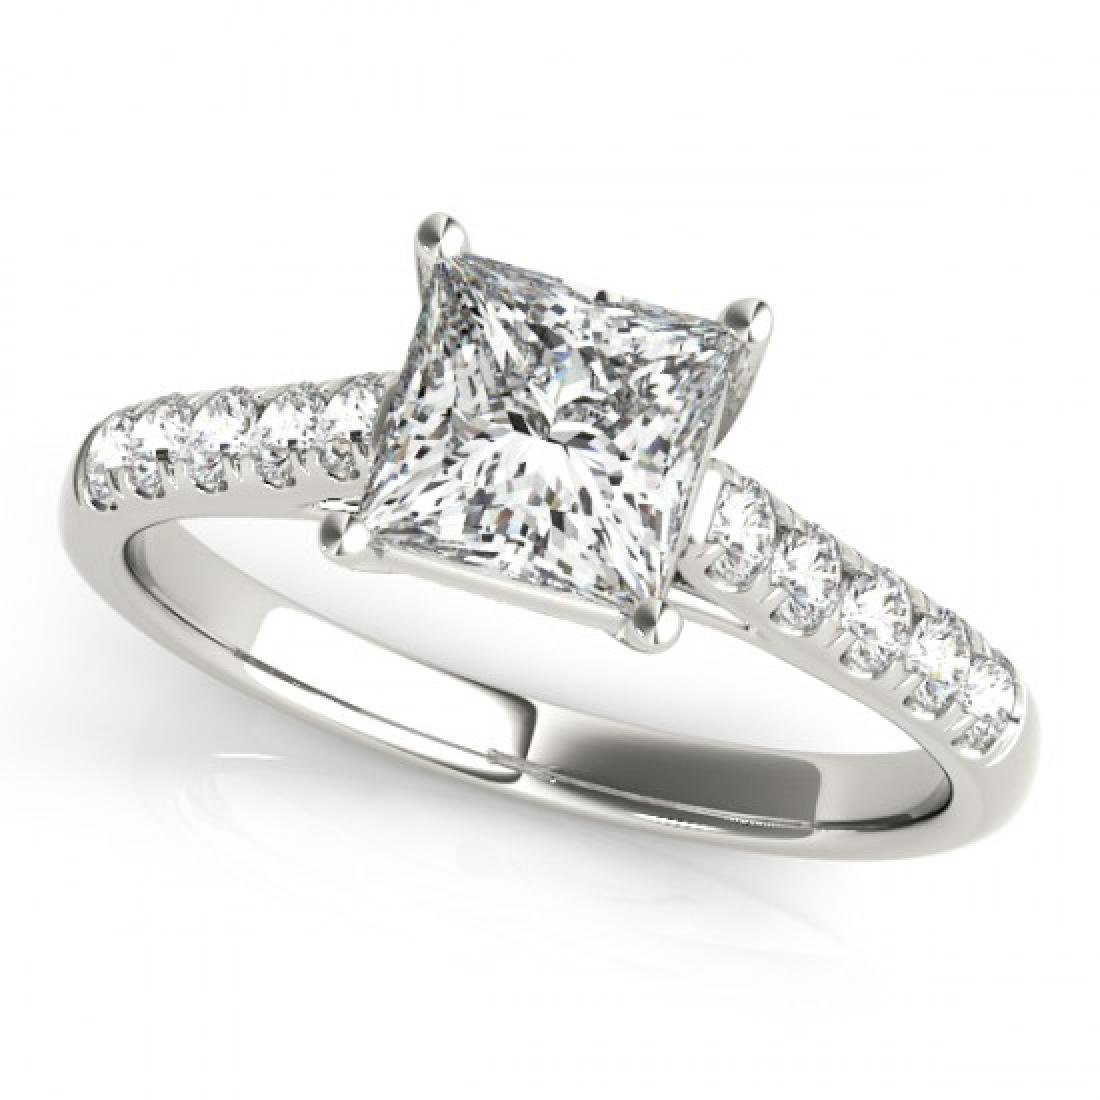 1.3 CTW Certified VS/SI Princess Diamond Ring 14K White